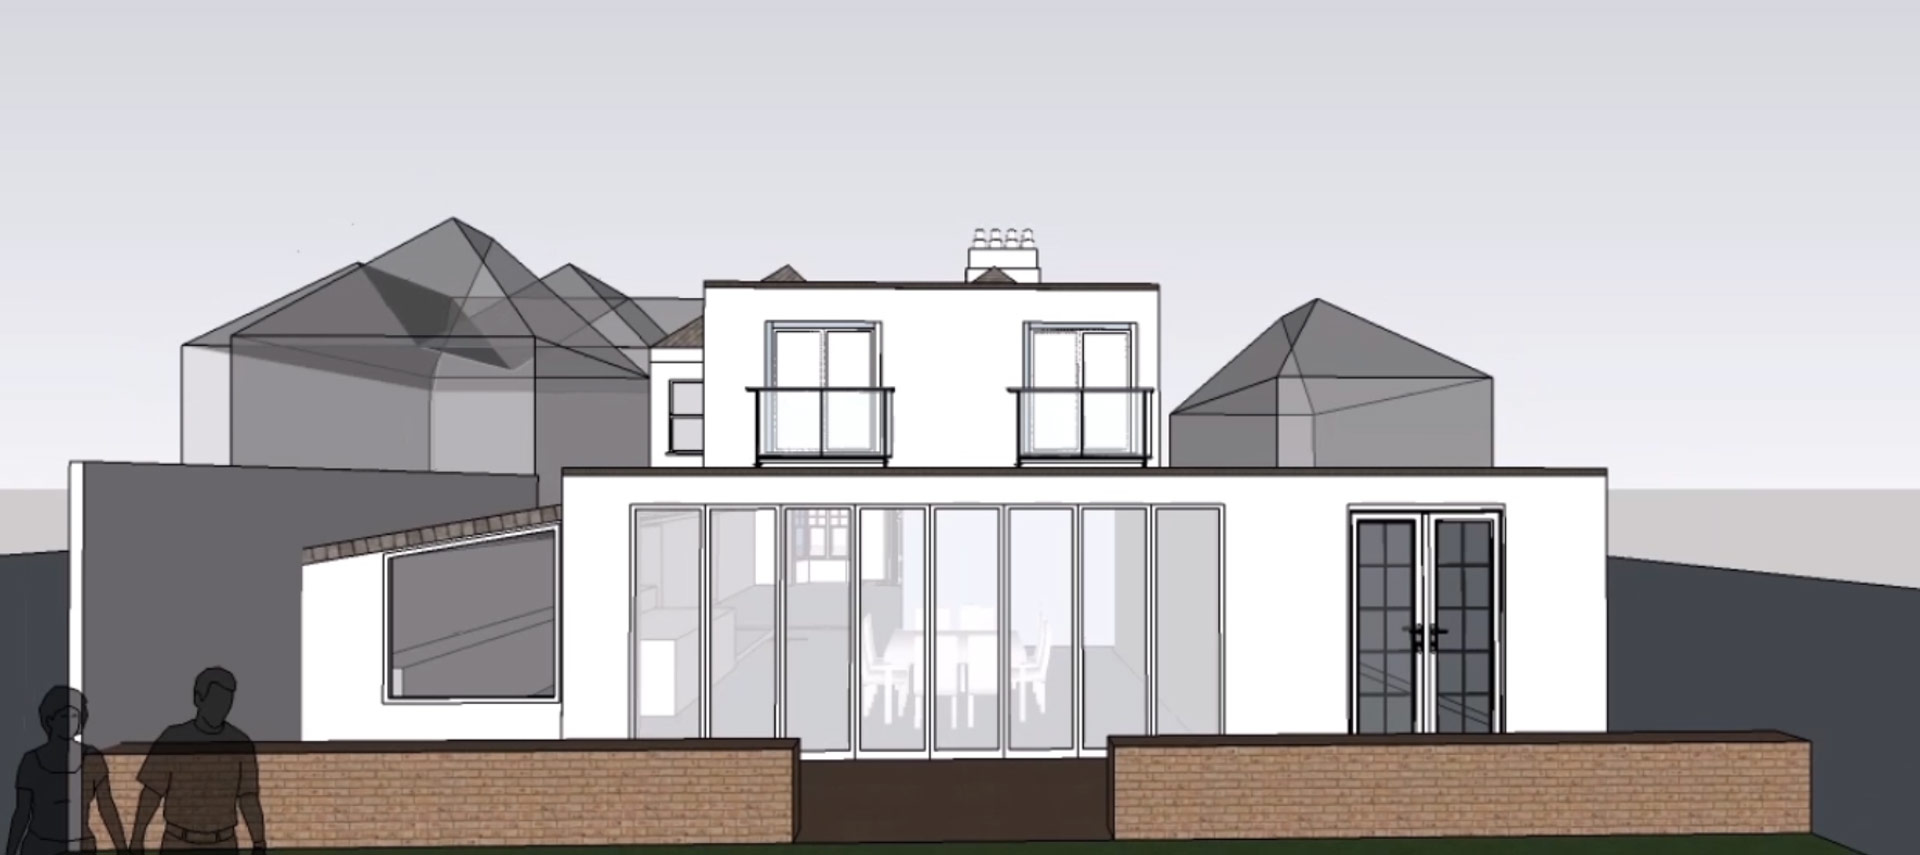 rear extension image for service page on Permitted Development